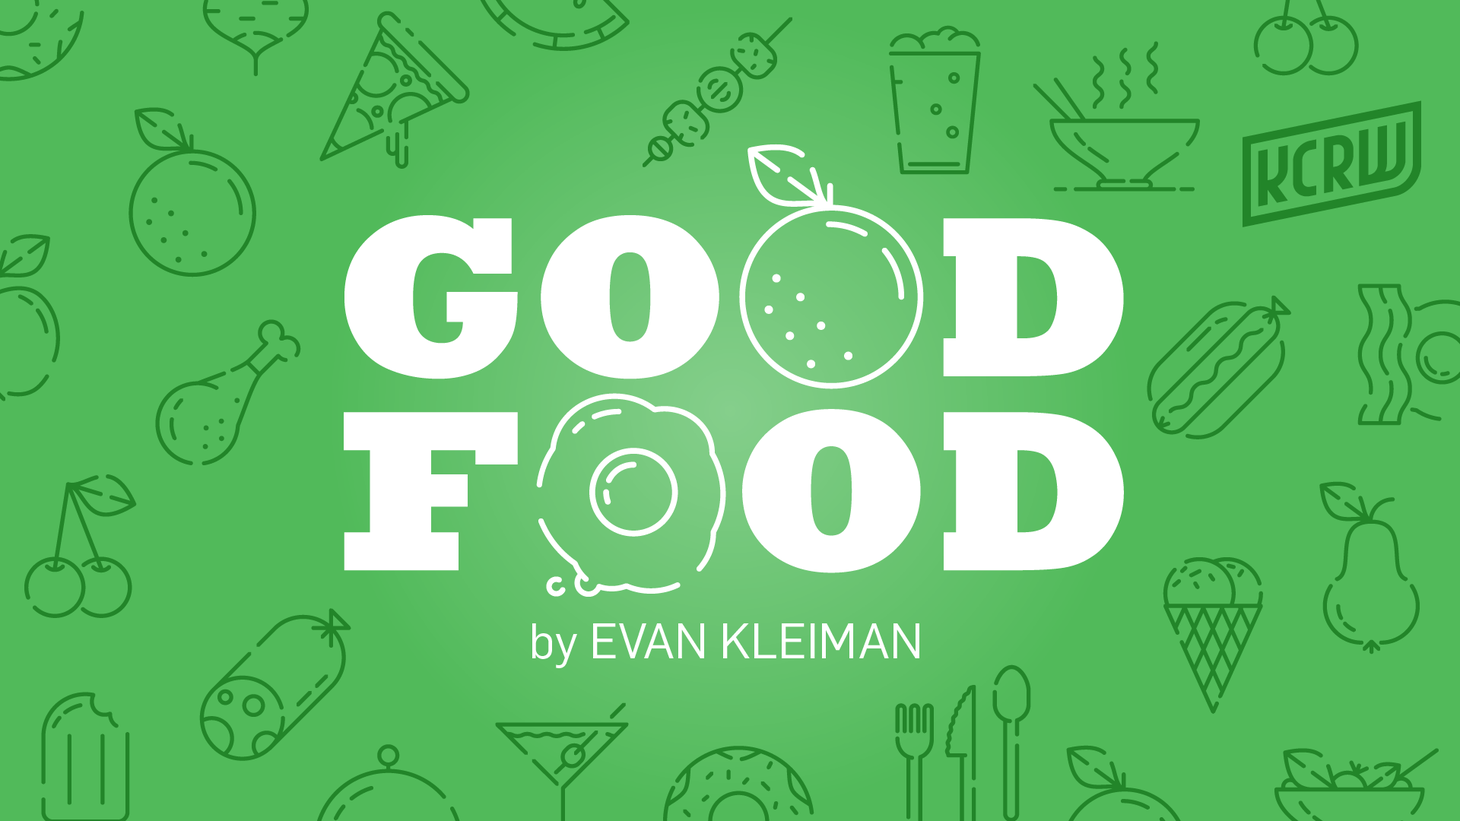 "This week on Good Food, host Evan Kleiman talks all about cookbooks to the people who write them and the people who know all about them. Actor Vincent Schiavelli discusses his soon-to-be-released memoir about growing up in Brooklyn, a story told through recipes. Leslie Jonaff, ""Chronicle Books'"" cookbook editor, tells us why there are so many cookbooks on the market these days. Grace Kirchenbaum scours the world for new cookbooks and reviews them in her ""World of Cookbooks"" catalog. We talk to the authors of ""Lopgoose and Spotted Dog,"" a cookbook inspired by a historical novel. Cookbook collecting is big business and cookbook dealer Jan Langone gives us some insights into her world. Ellen Rose of L.A.'s ""Cook's Library"" gives us some ideas of new, wonderful and affordable cookbooks. We'll have the ""Good Food Glossary"" and, as always, a visit to the Farmers' Market."